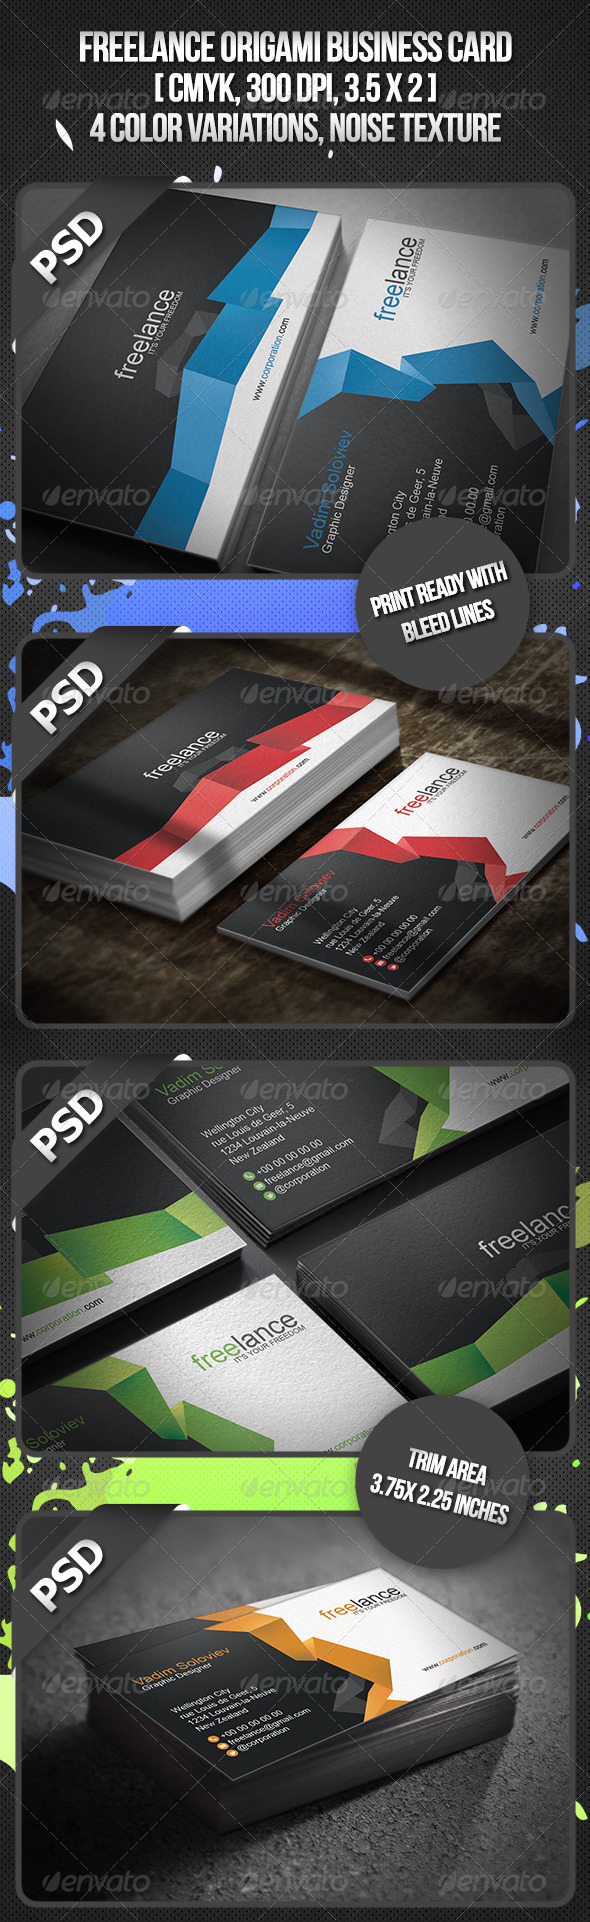 GraphicRiver Freelance Origami Business Card 3976548